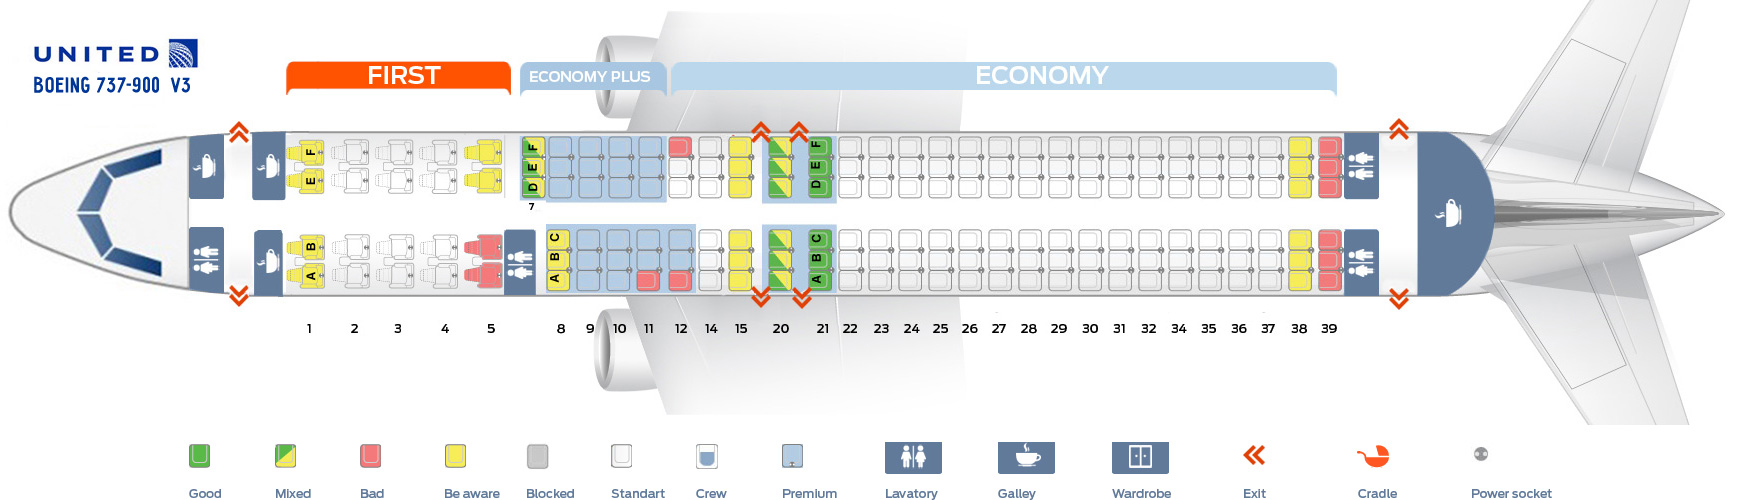 Seat_map_United_Airlines_Boeing_737_900_ver3